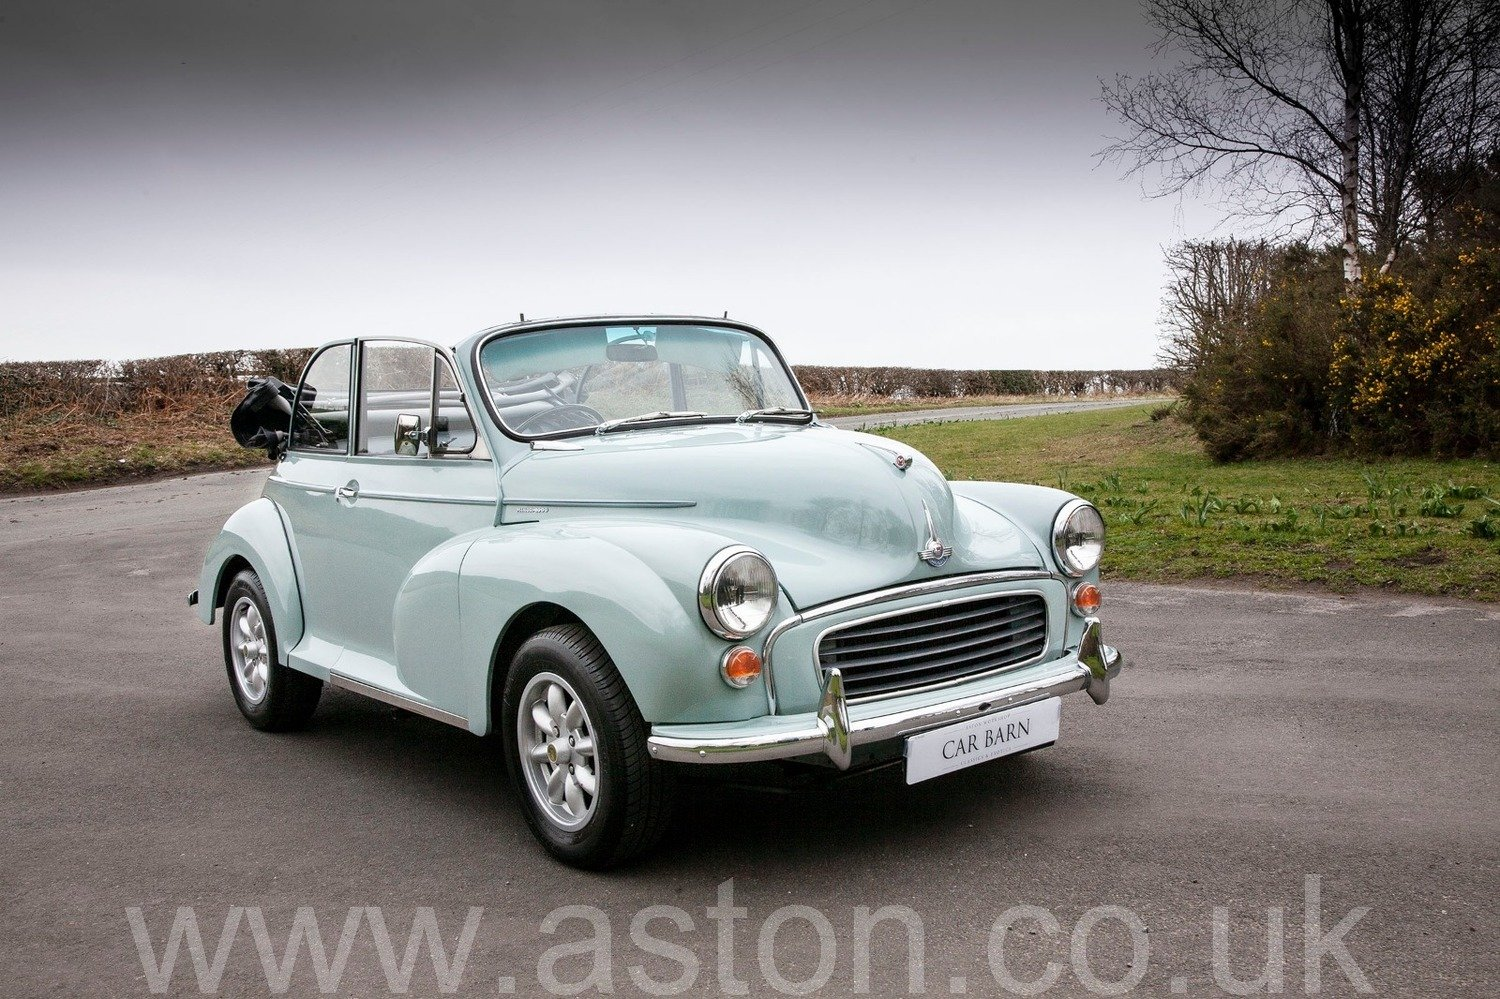 1969 Morris Minor 1000 Convertible For Sale (picture 1 of 6)